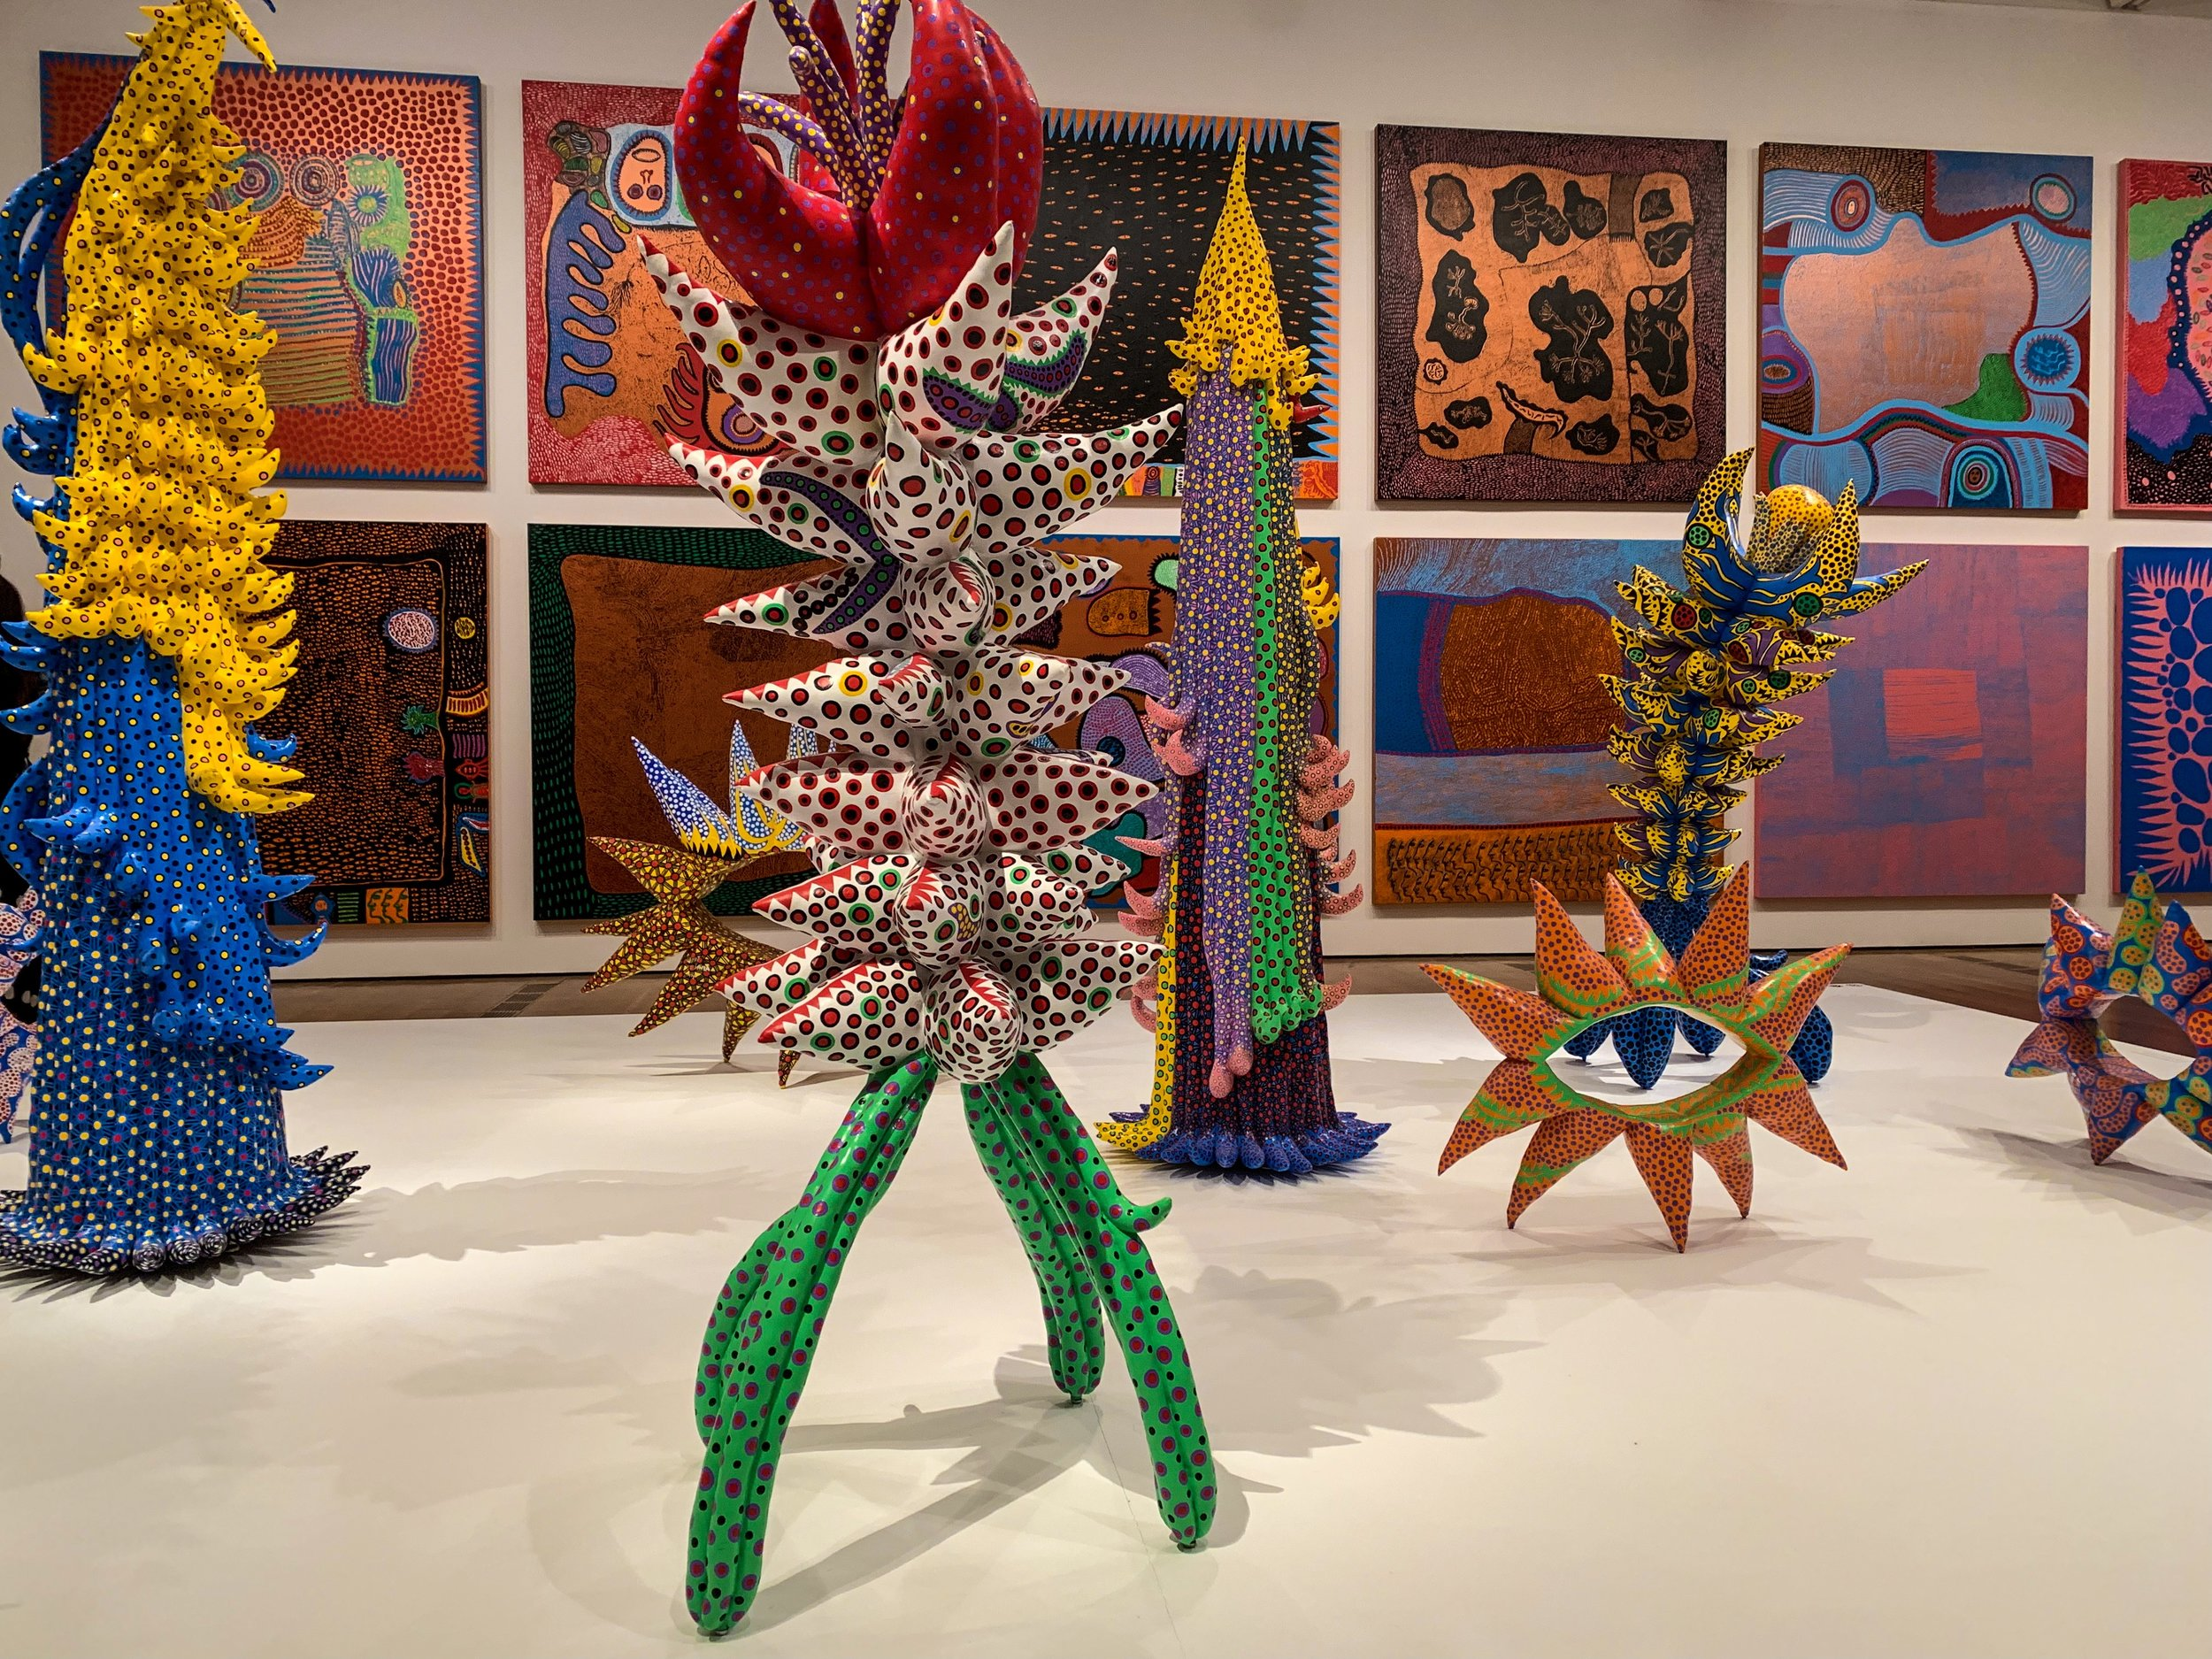 Guest Are Welcomed With A Collection Of Sculptures And Paintings By Yayoi Kusama